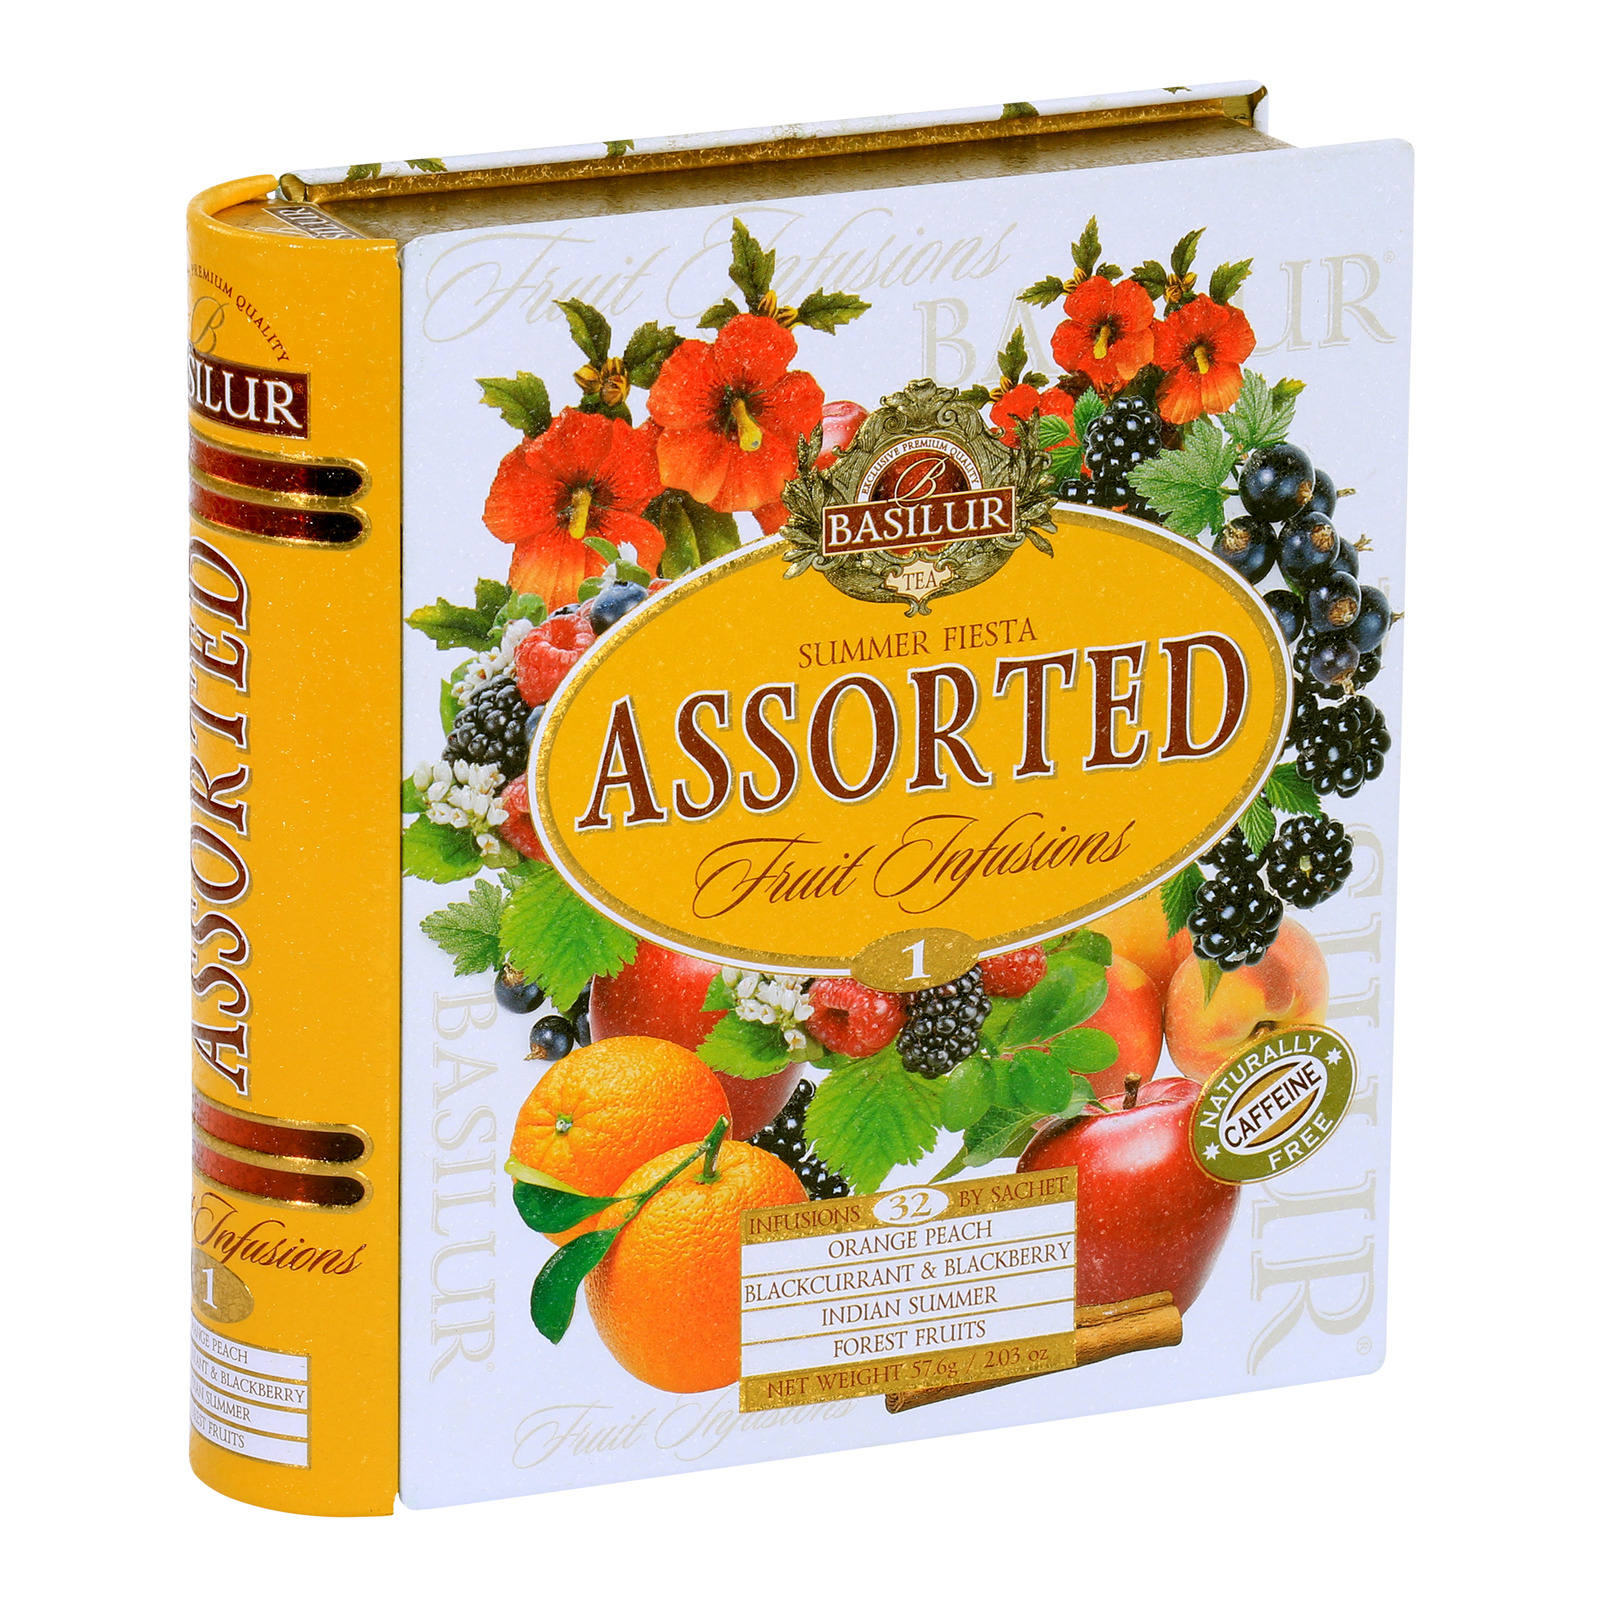 Basilur Assorted Book - Summer Fiesta Fruit Infusions